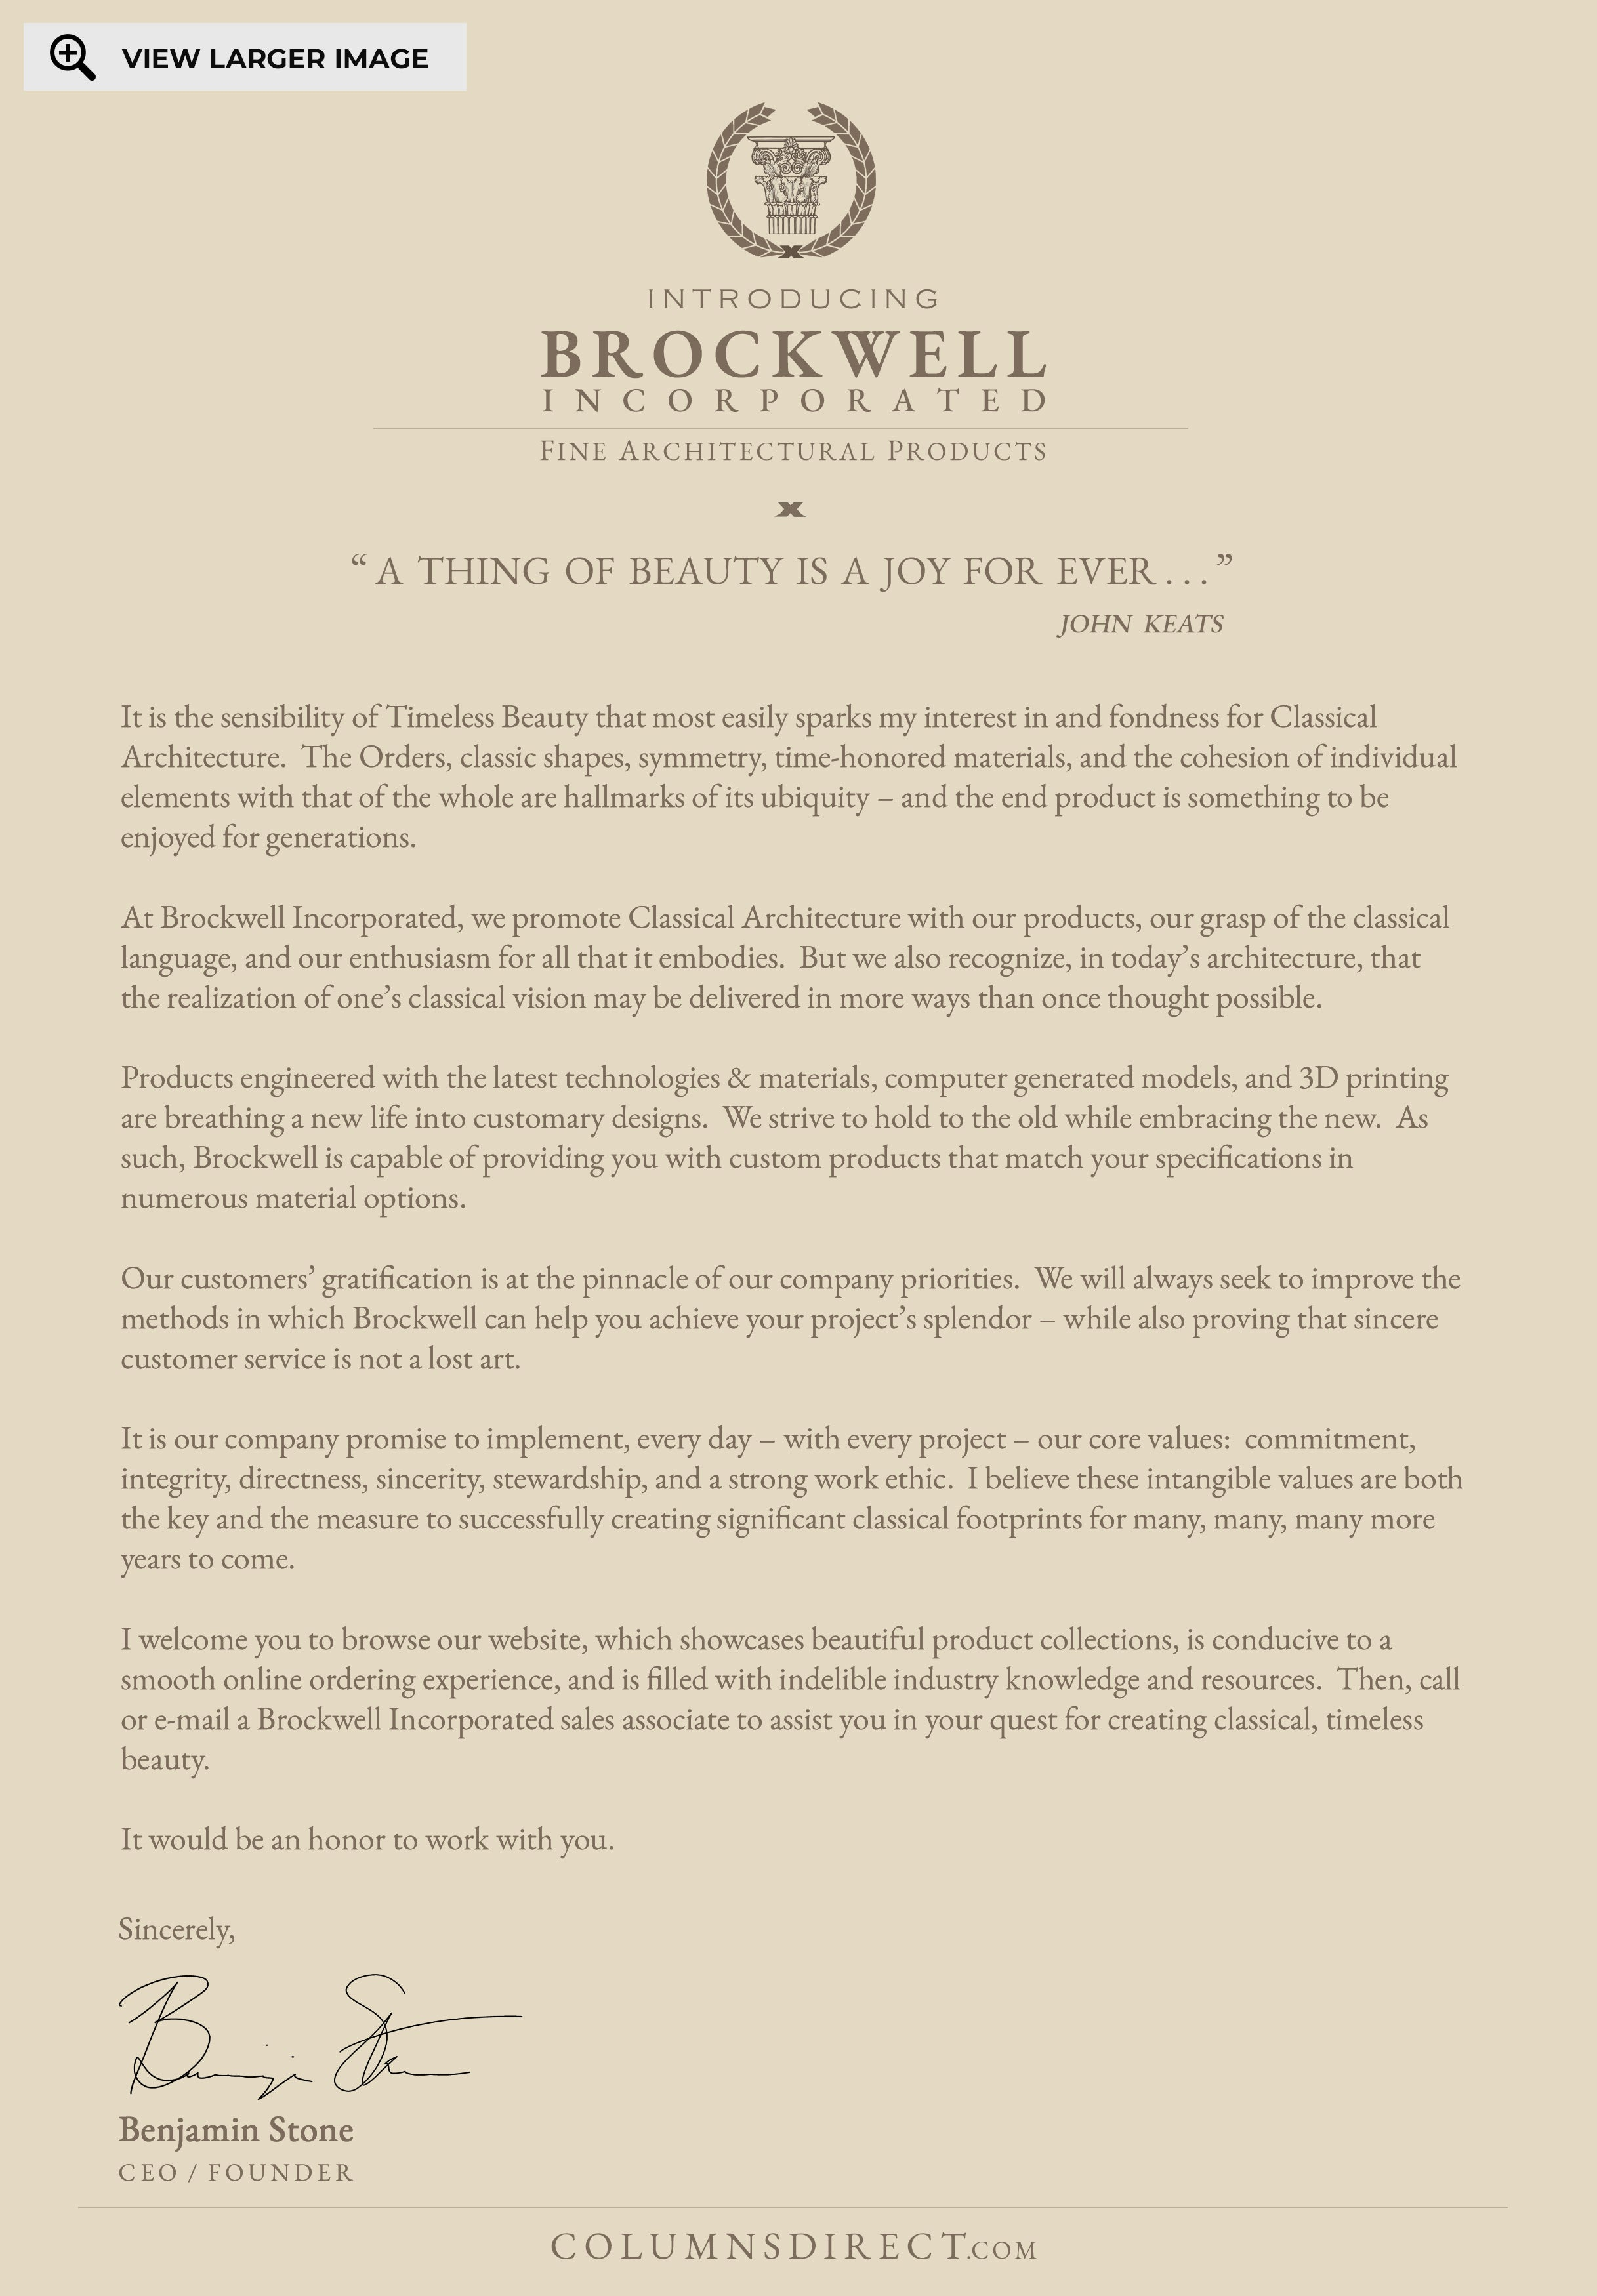 Founder's Company Message - Brockwell Incorporated, CEO / Founder, Benjamin Stone